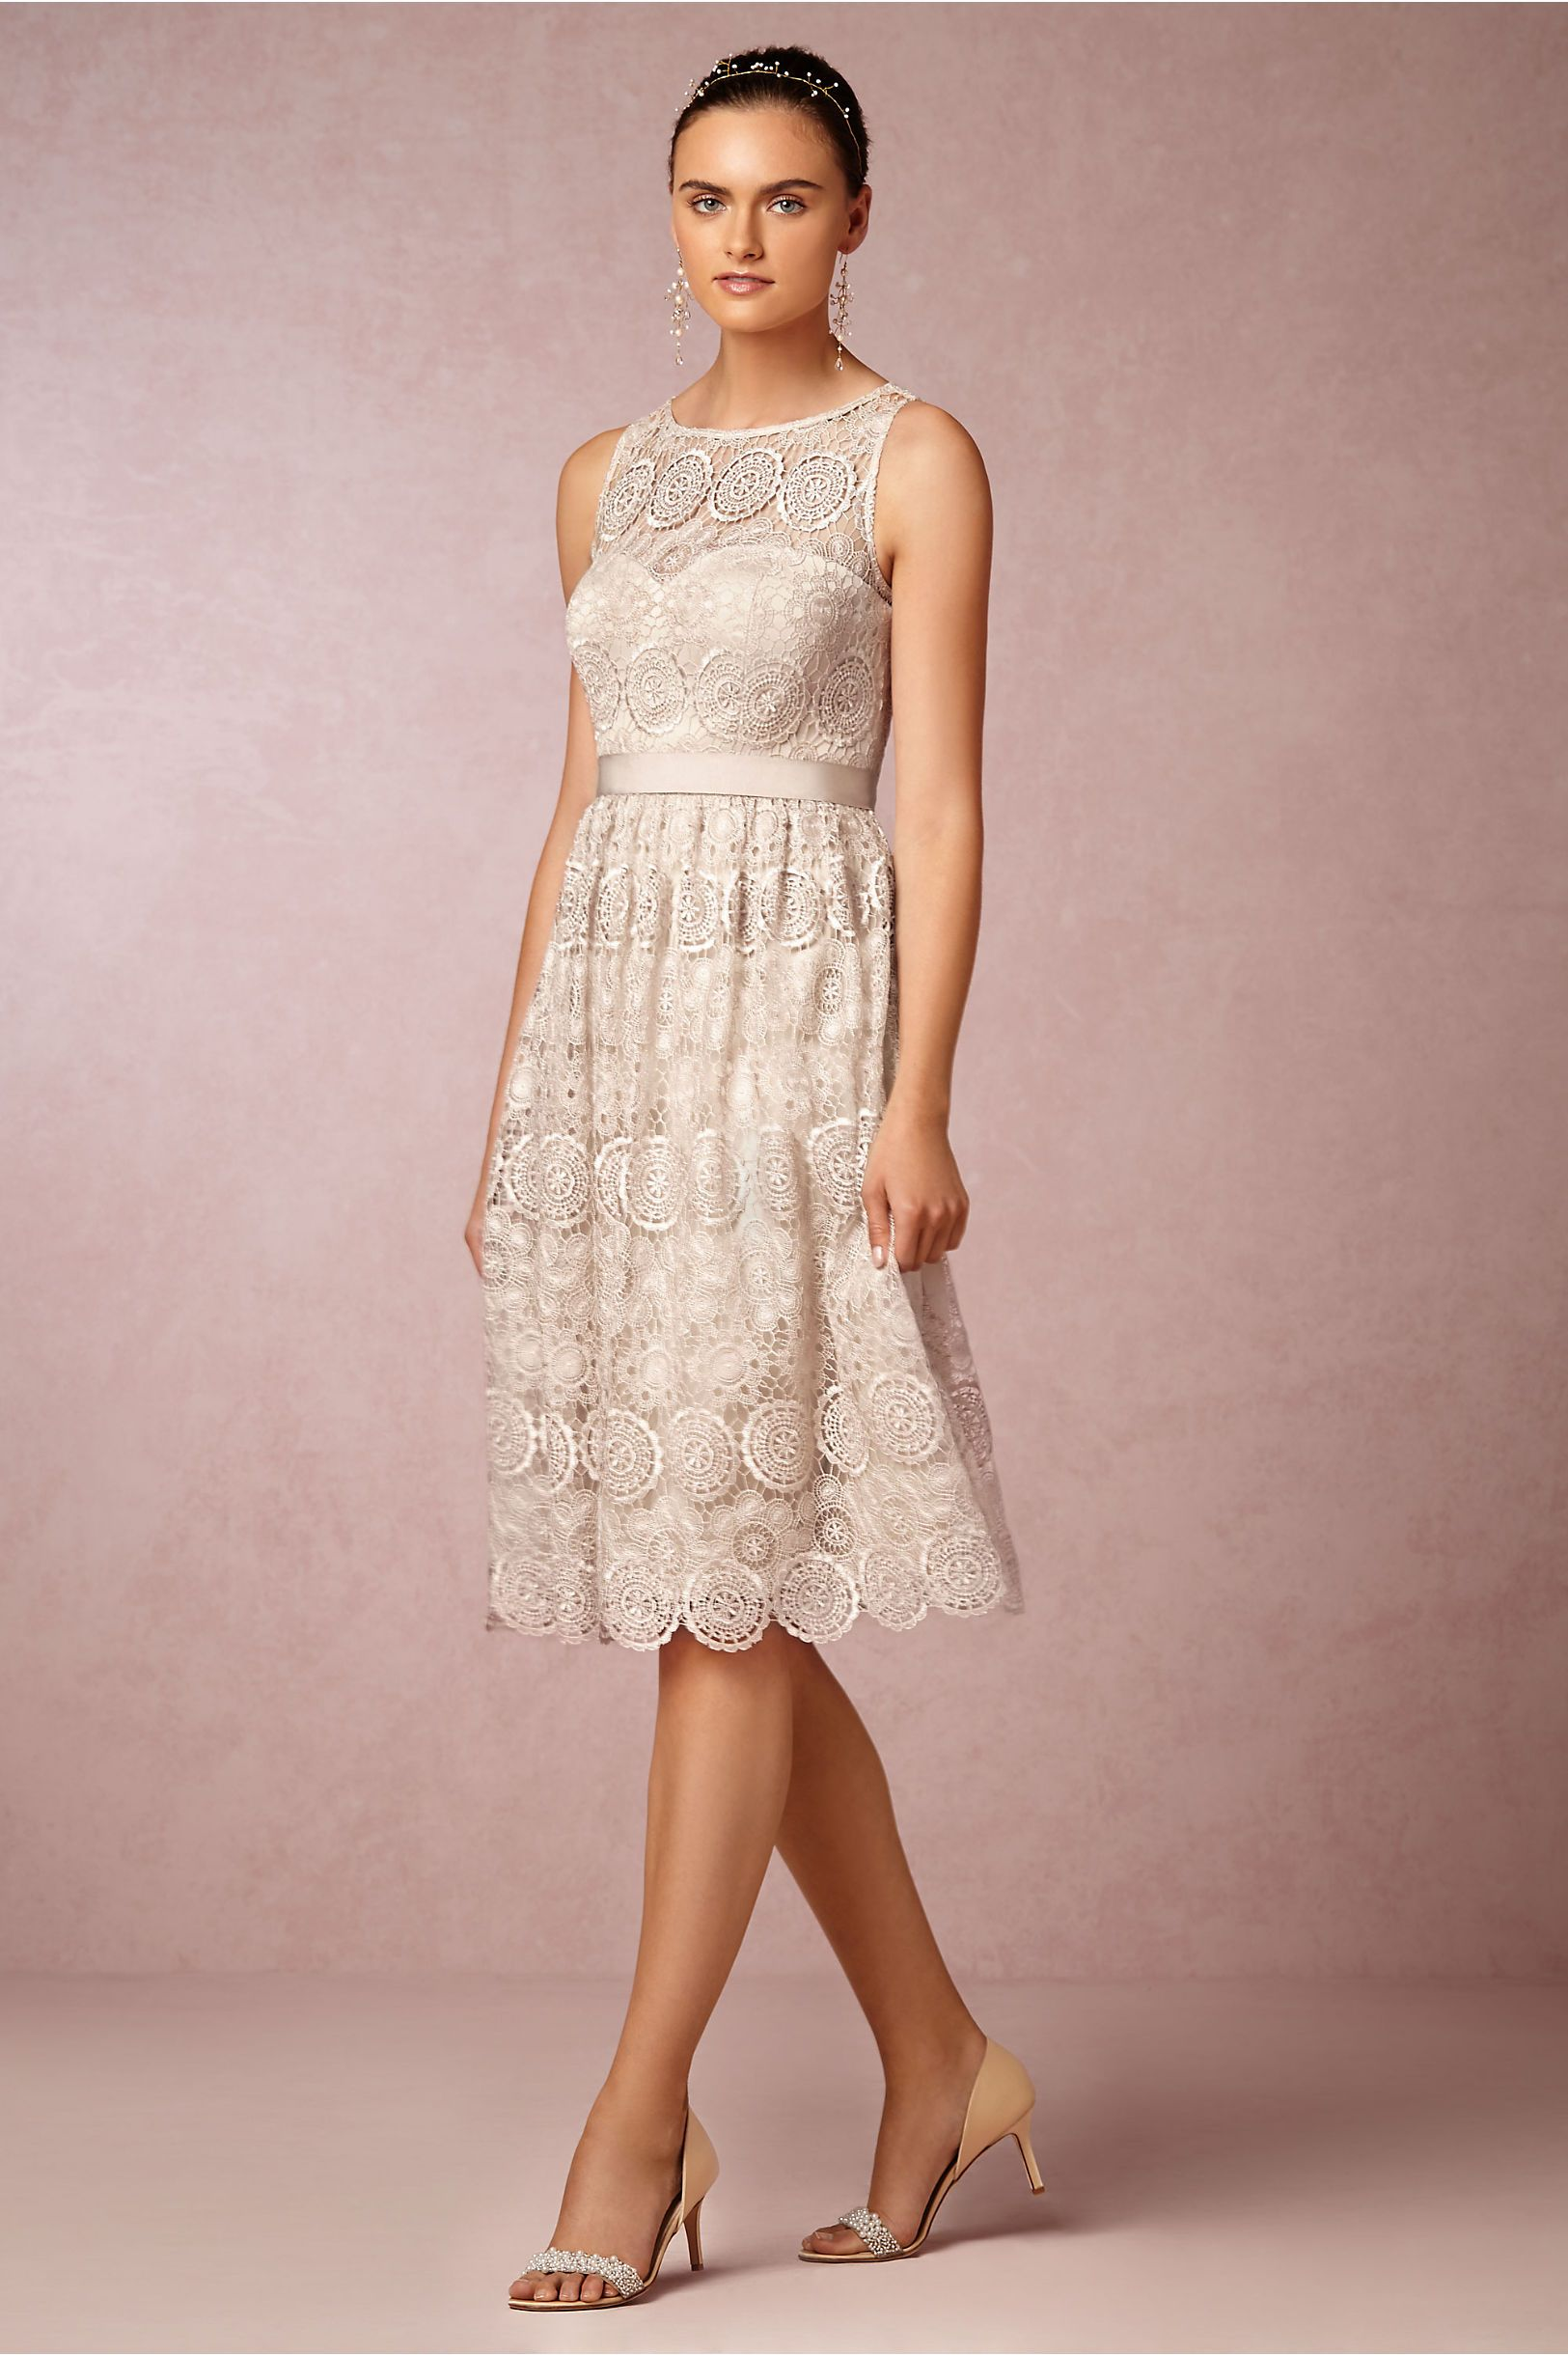 Lace dresses for wedding reception  The ELD Shop For The Bride  wedding  Pinterest  Wedding dresses